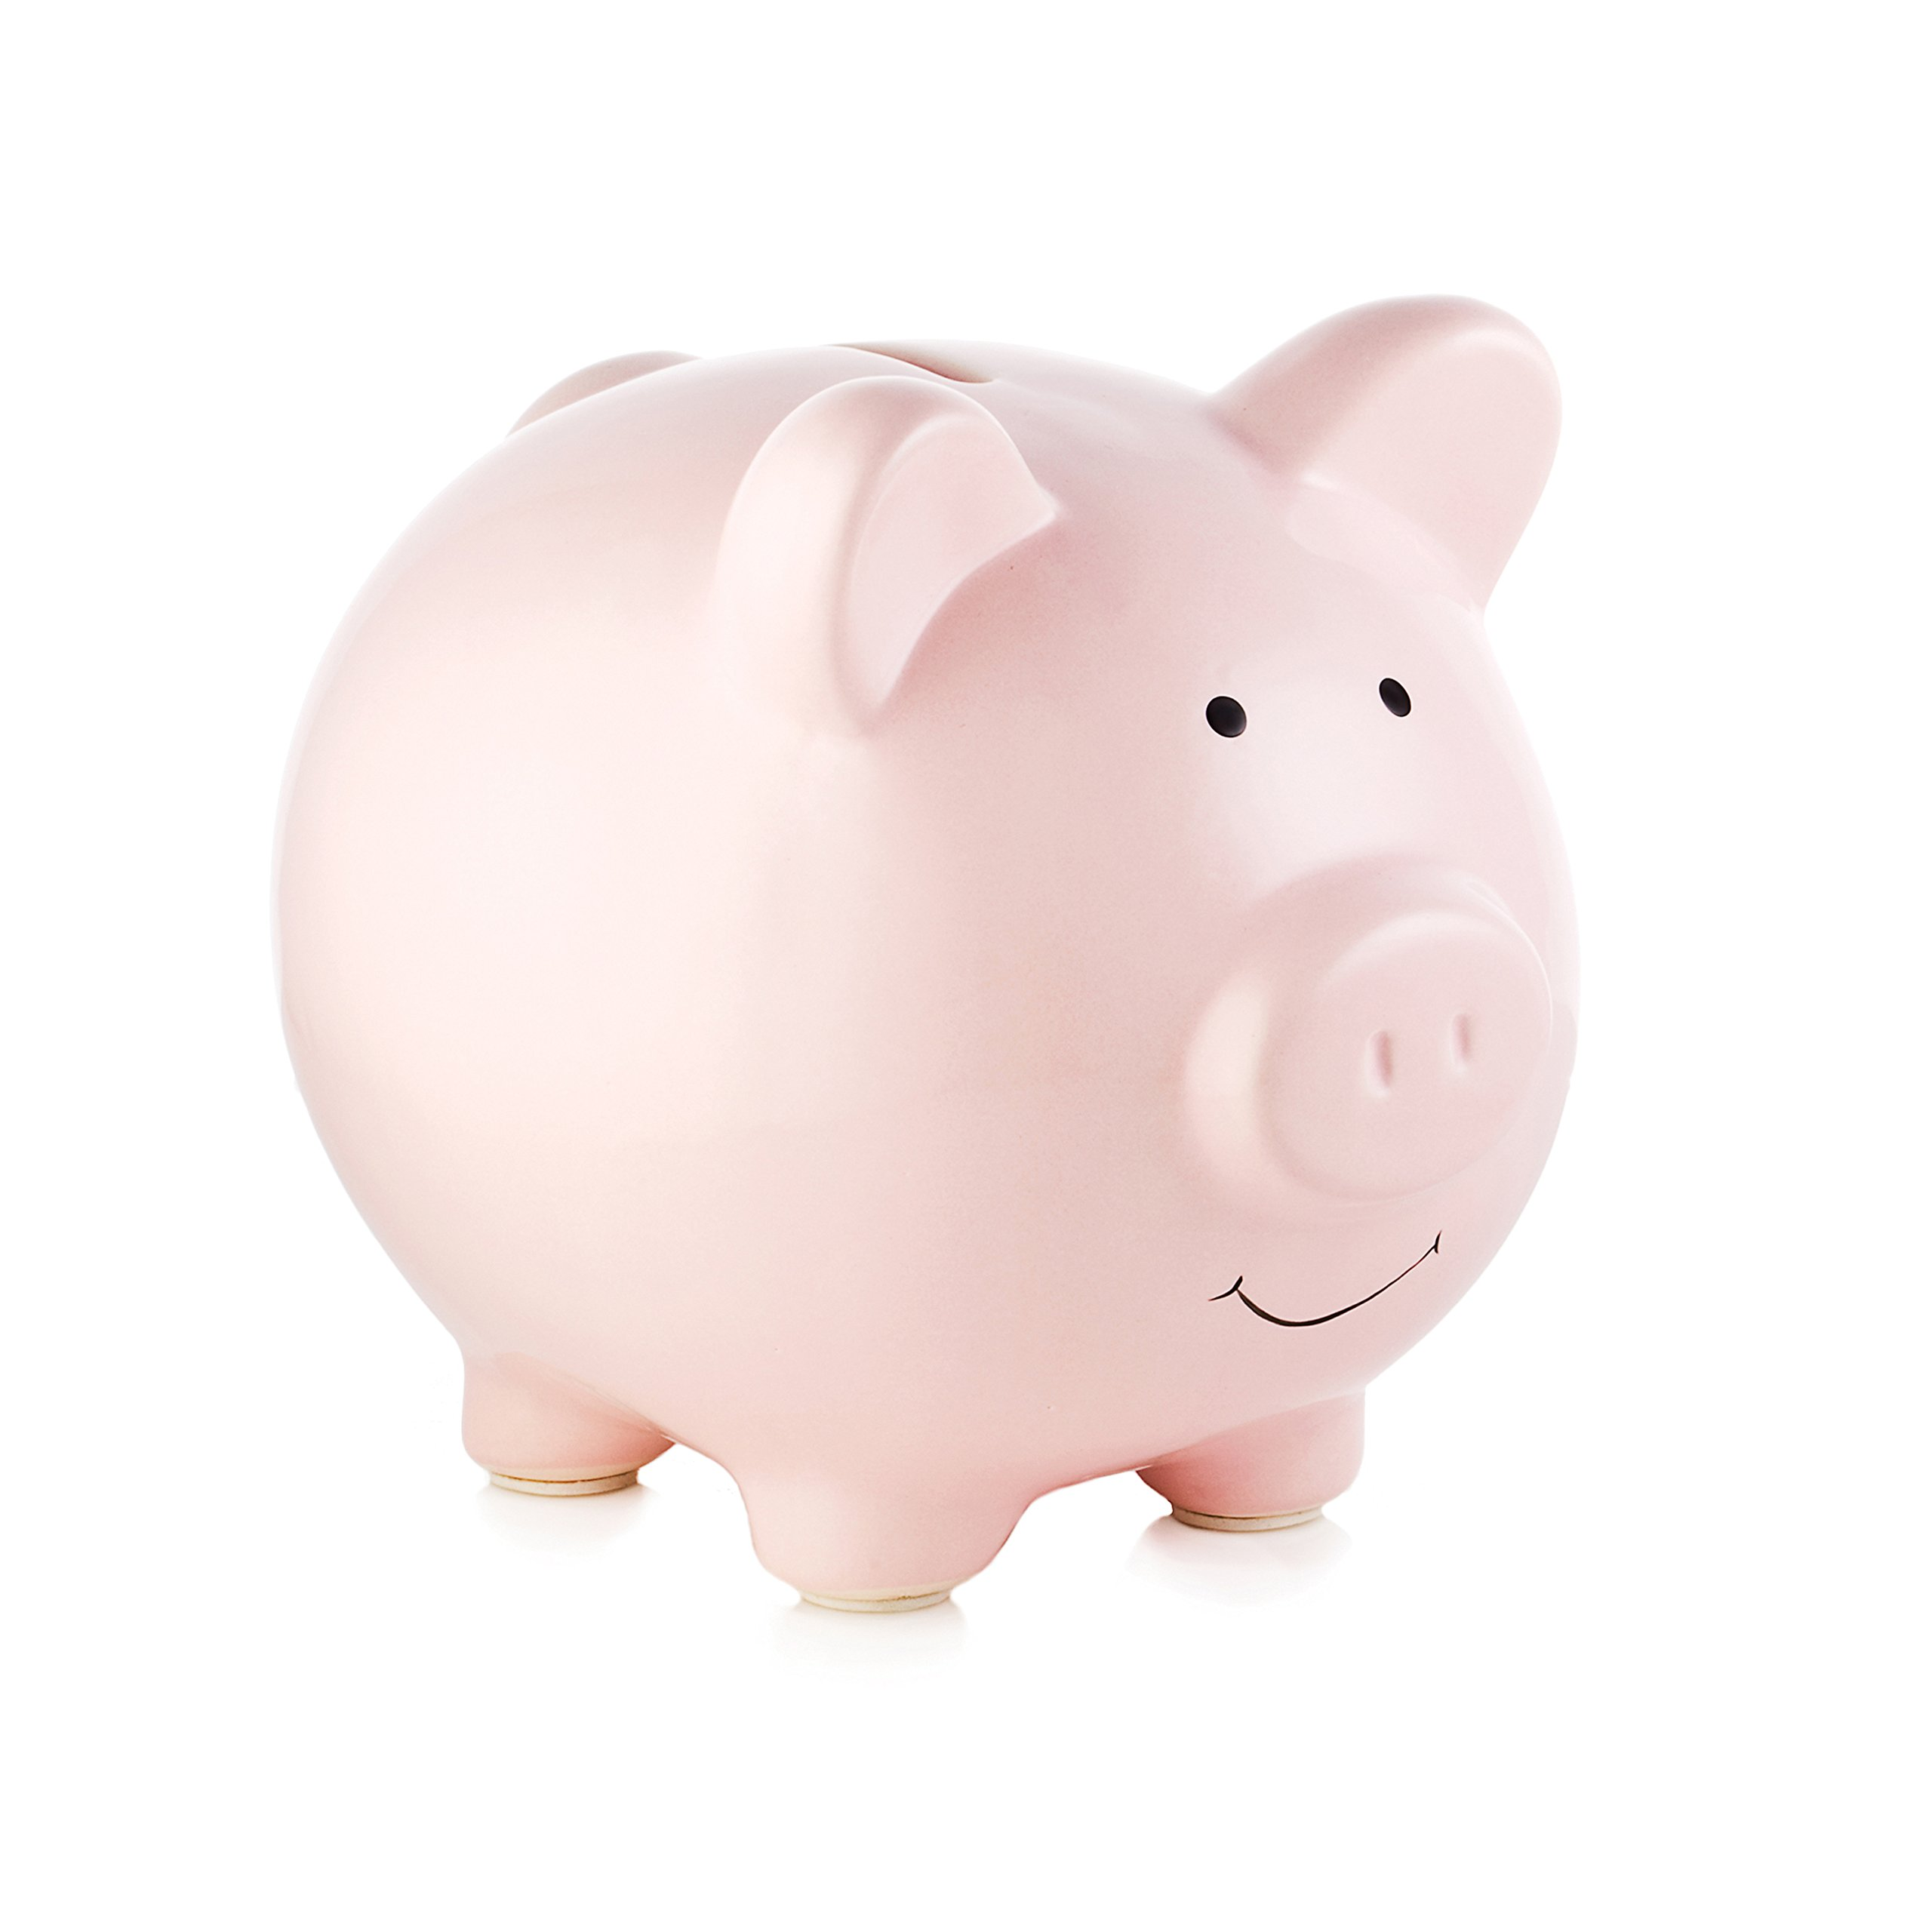 Amazon.com : Carters Smiley Happy Piggy Bank, Silver : Toy ...